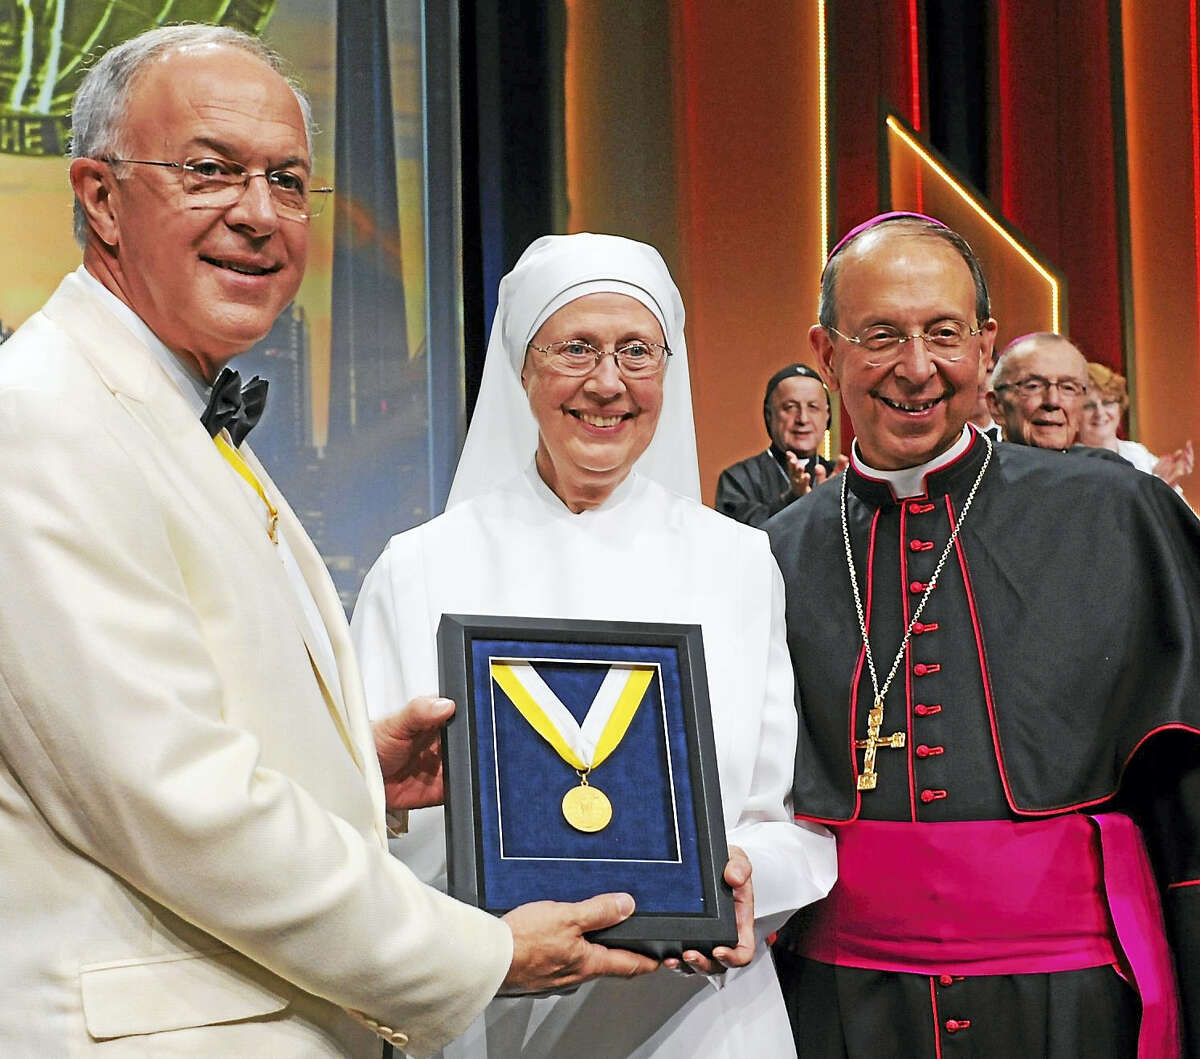 Supreme Knight Carl A. Anderson, left, presents the Knights of Columbus' Gaudium et Spes Award to Mother Loraine Marie Maguire, superior of the Baltimore Province of the Little Sisters of the Poor. At right is Archbishop William Lori of Baltimore.